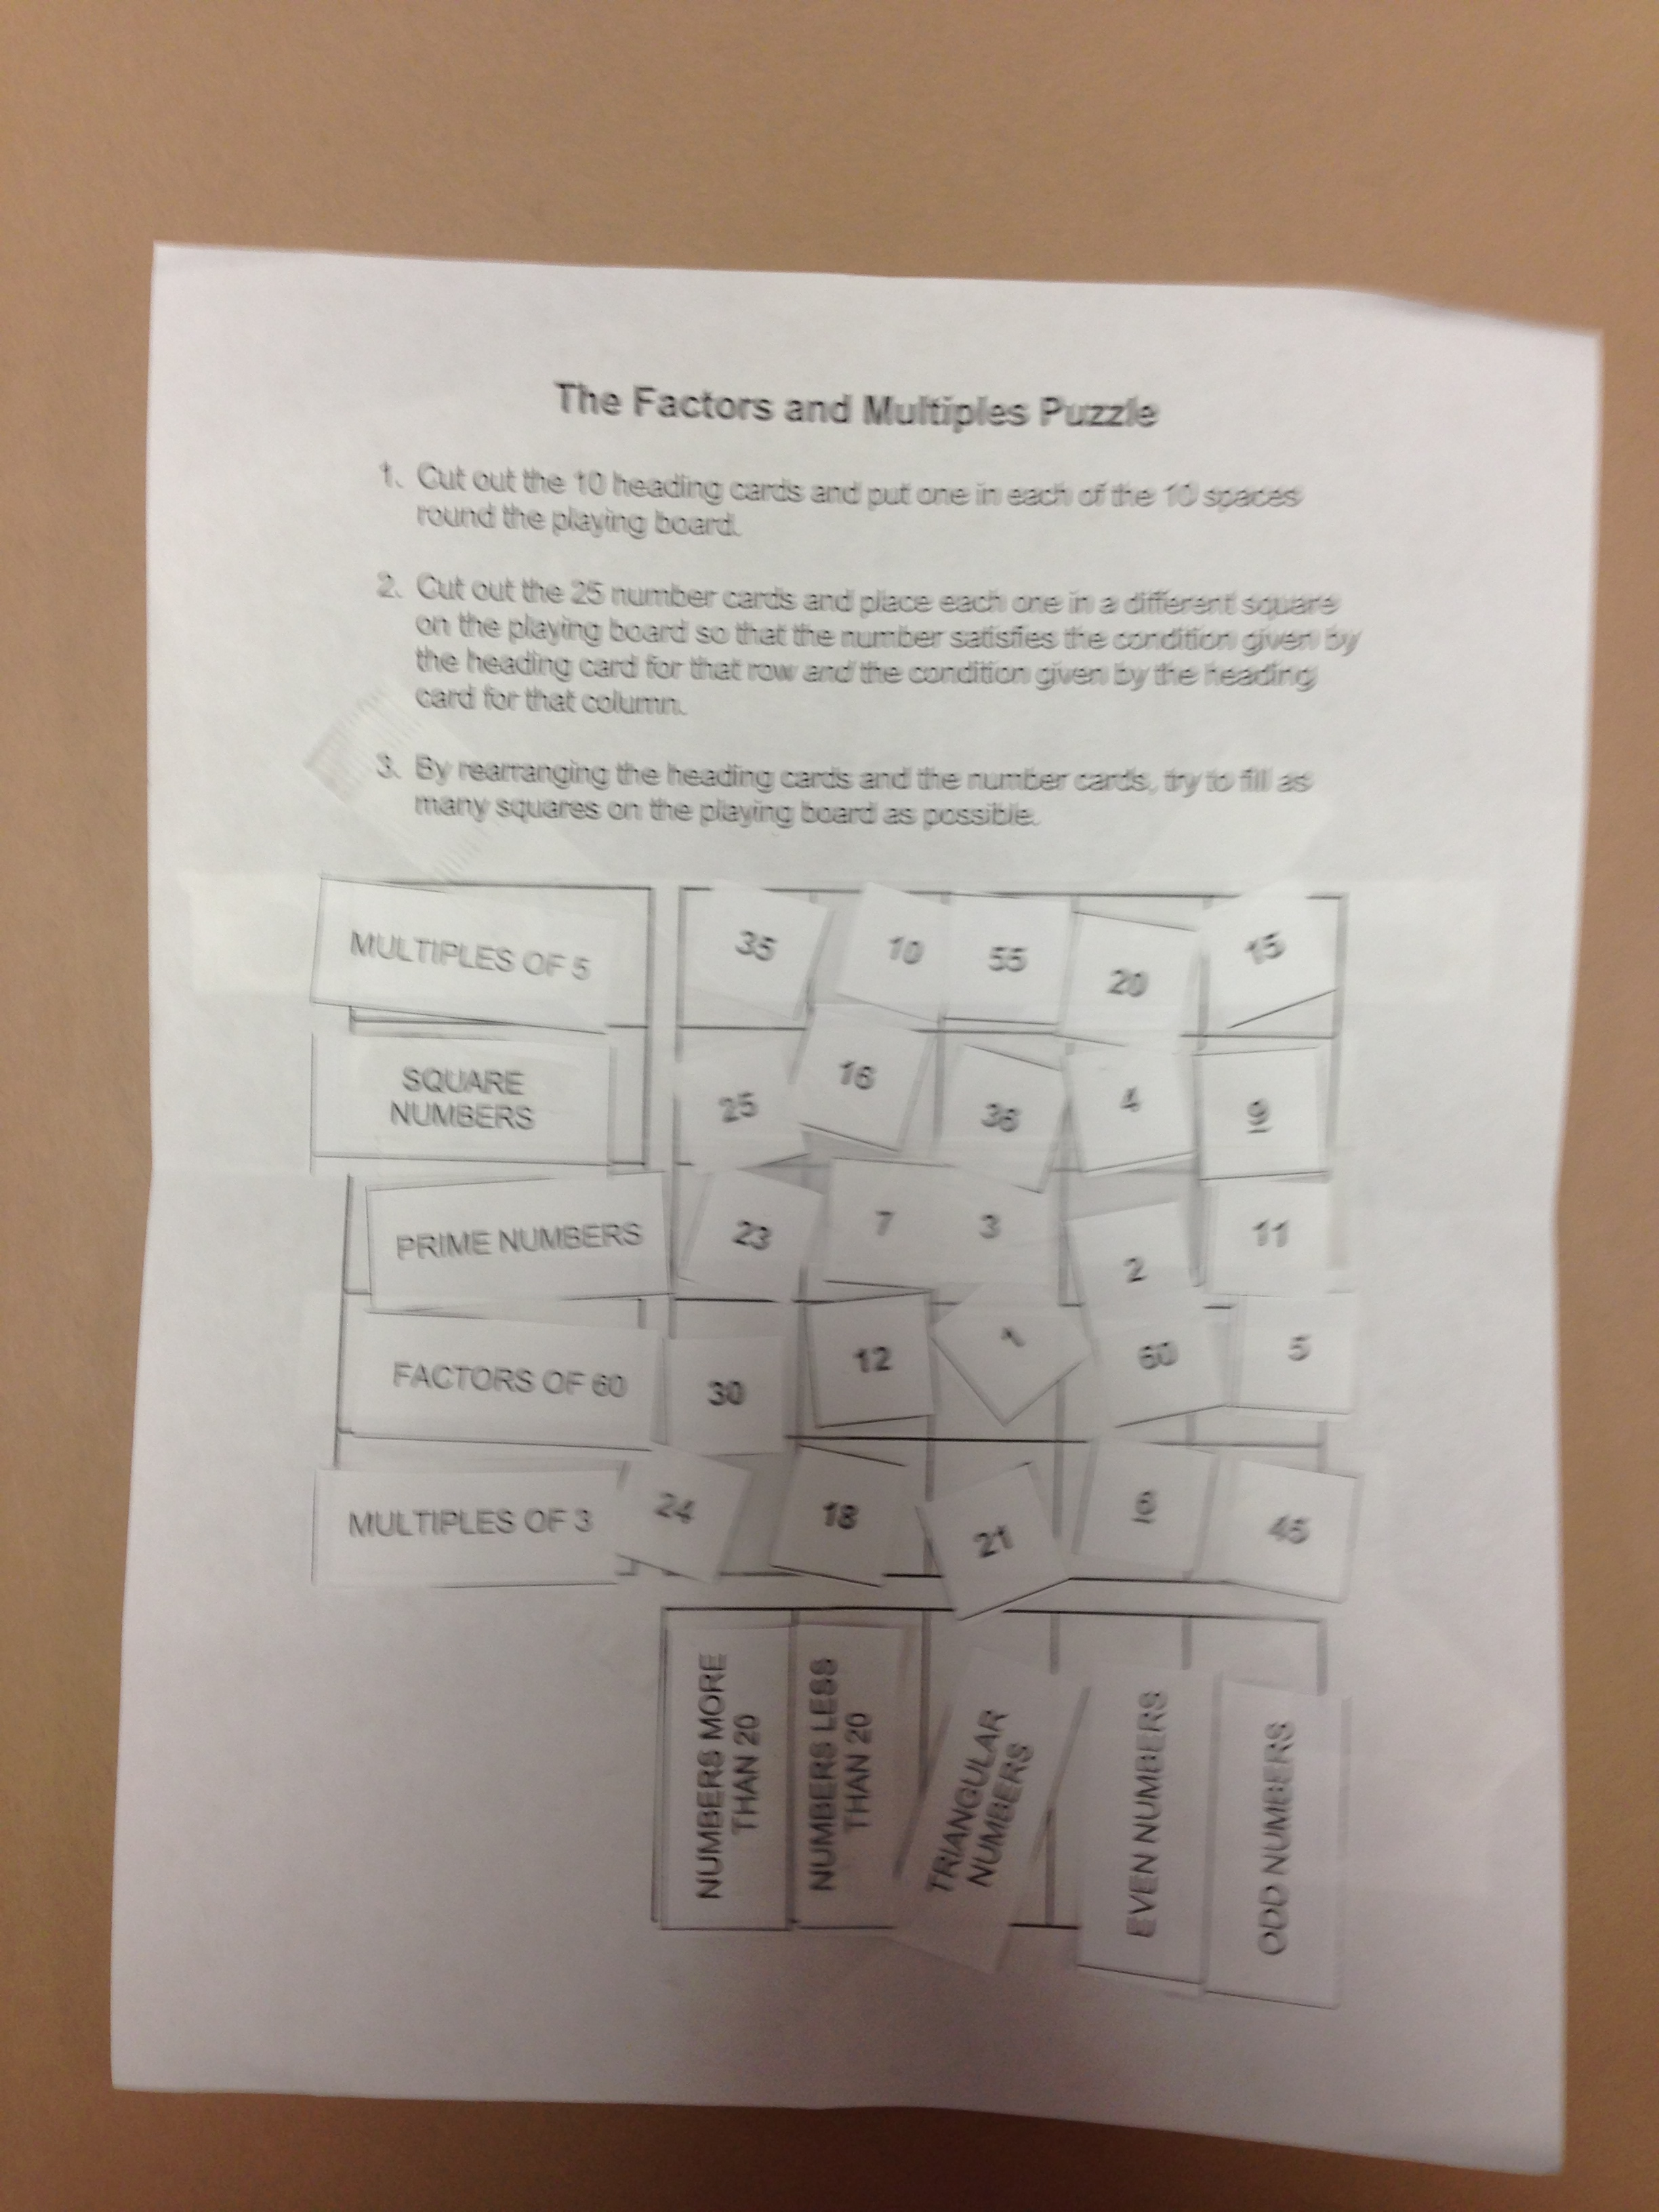 Worksheet On Factors And Multiples